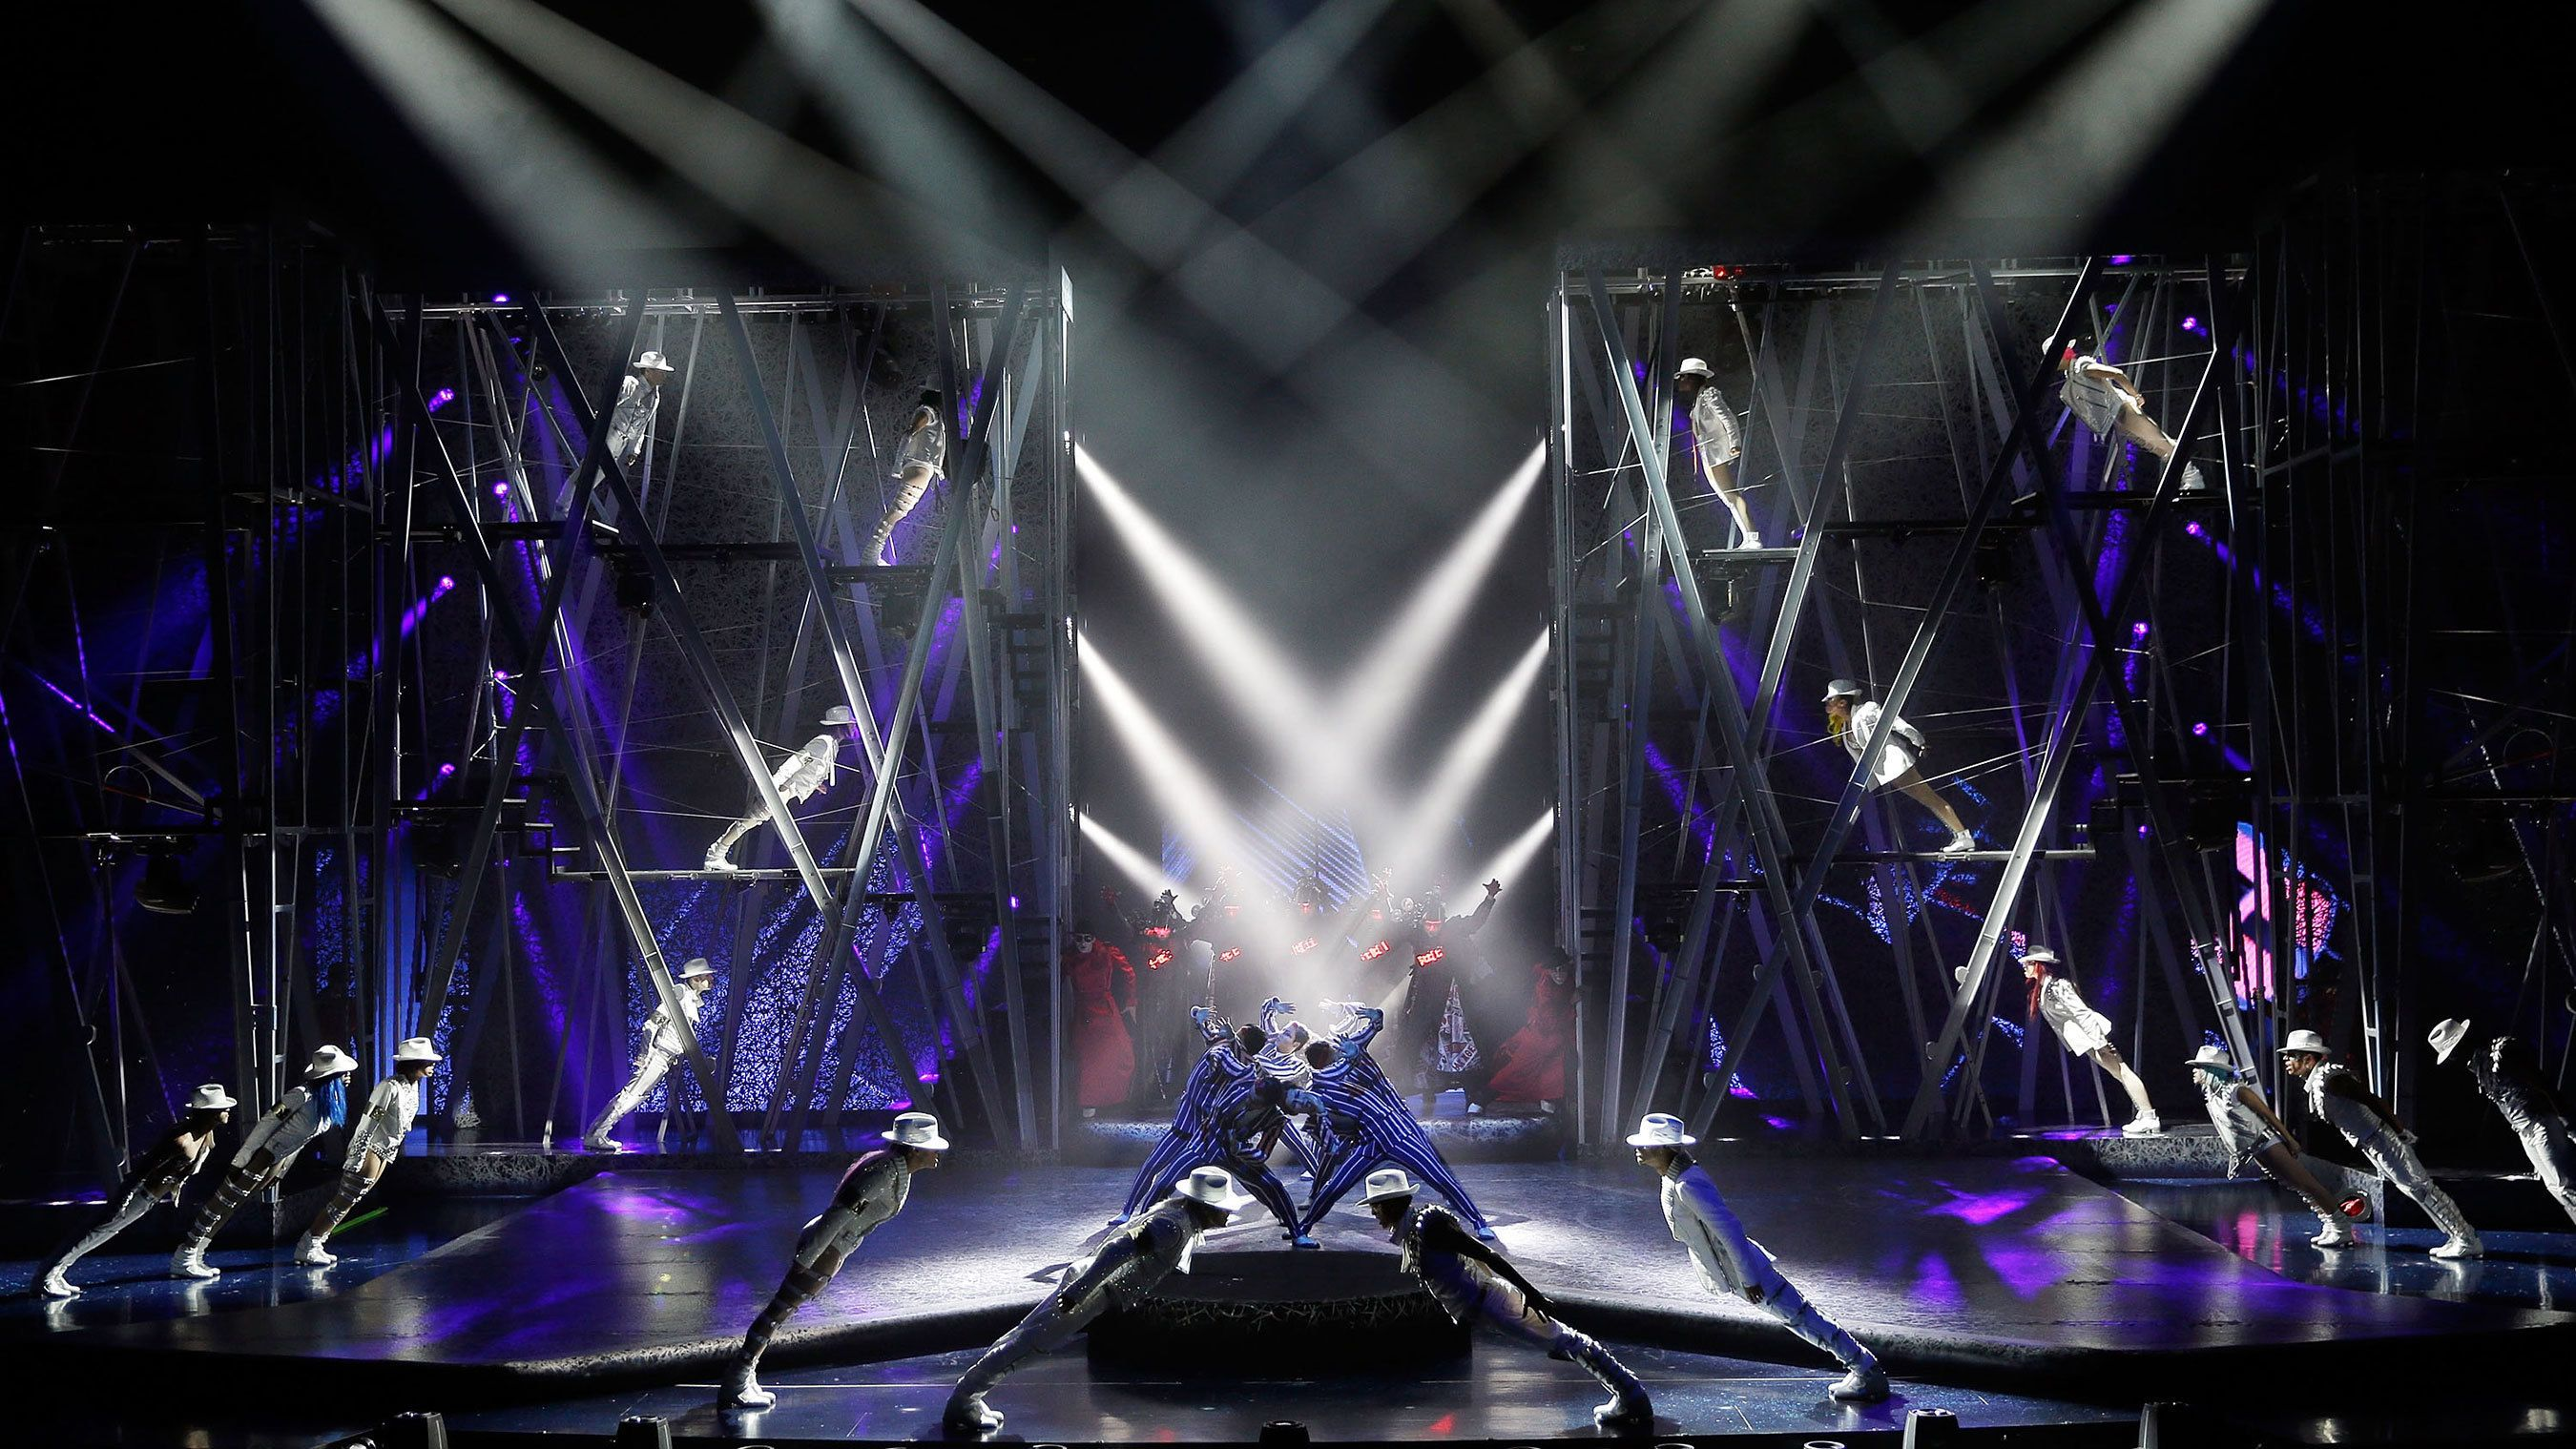 Tribute to Michael Jackson's Smooth Criminal dance routine performed live onstage at Mandalay Bay in Las Vegas